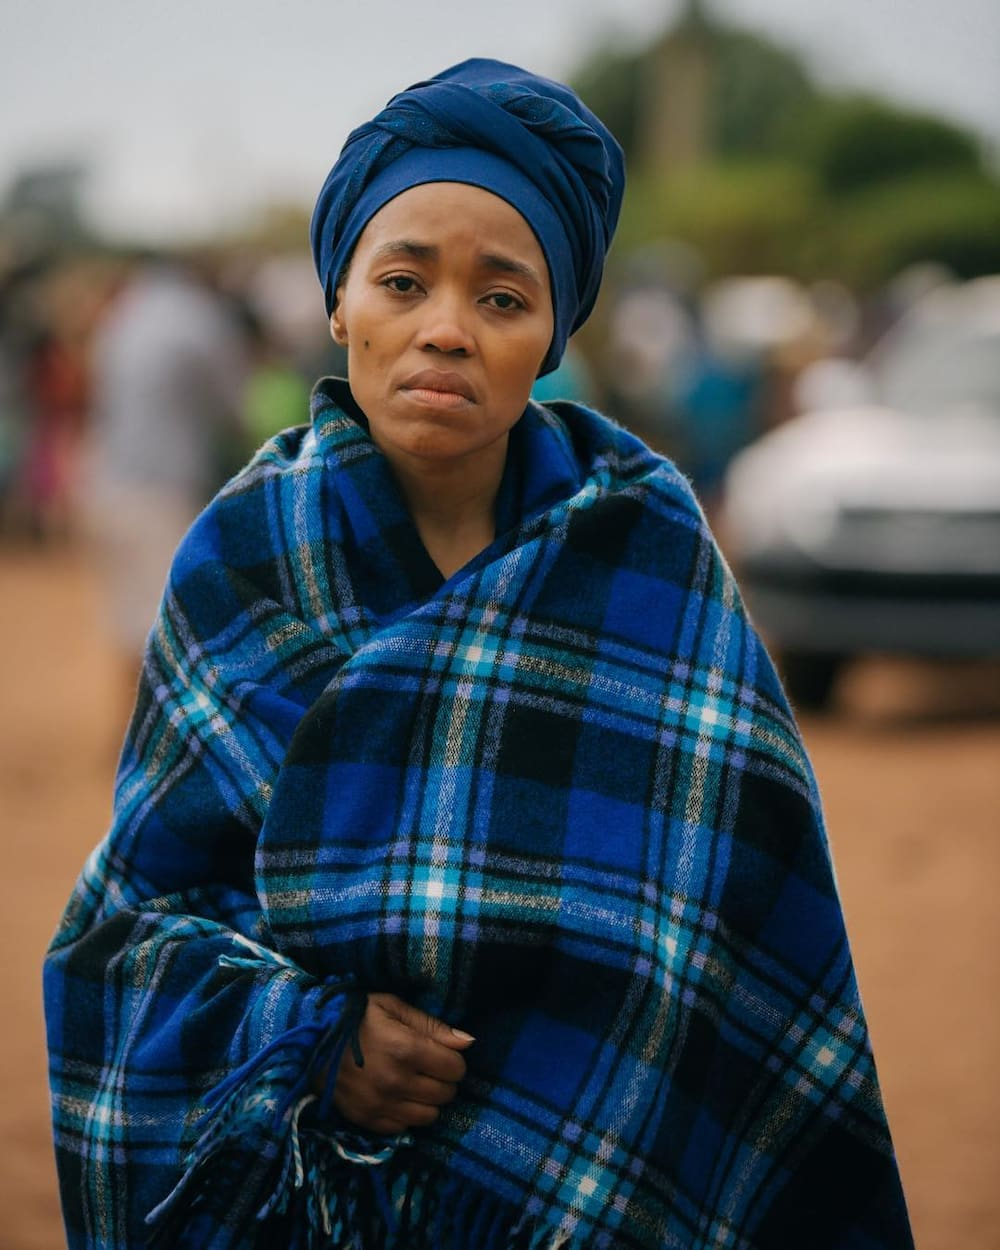 South African celebrities